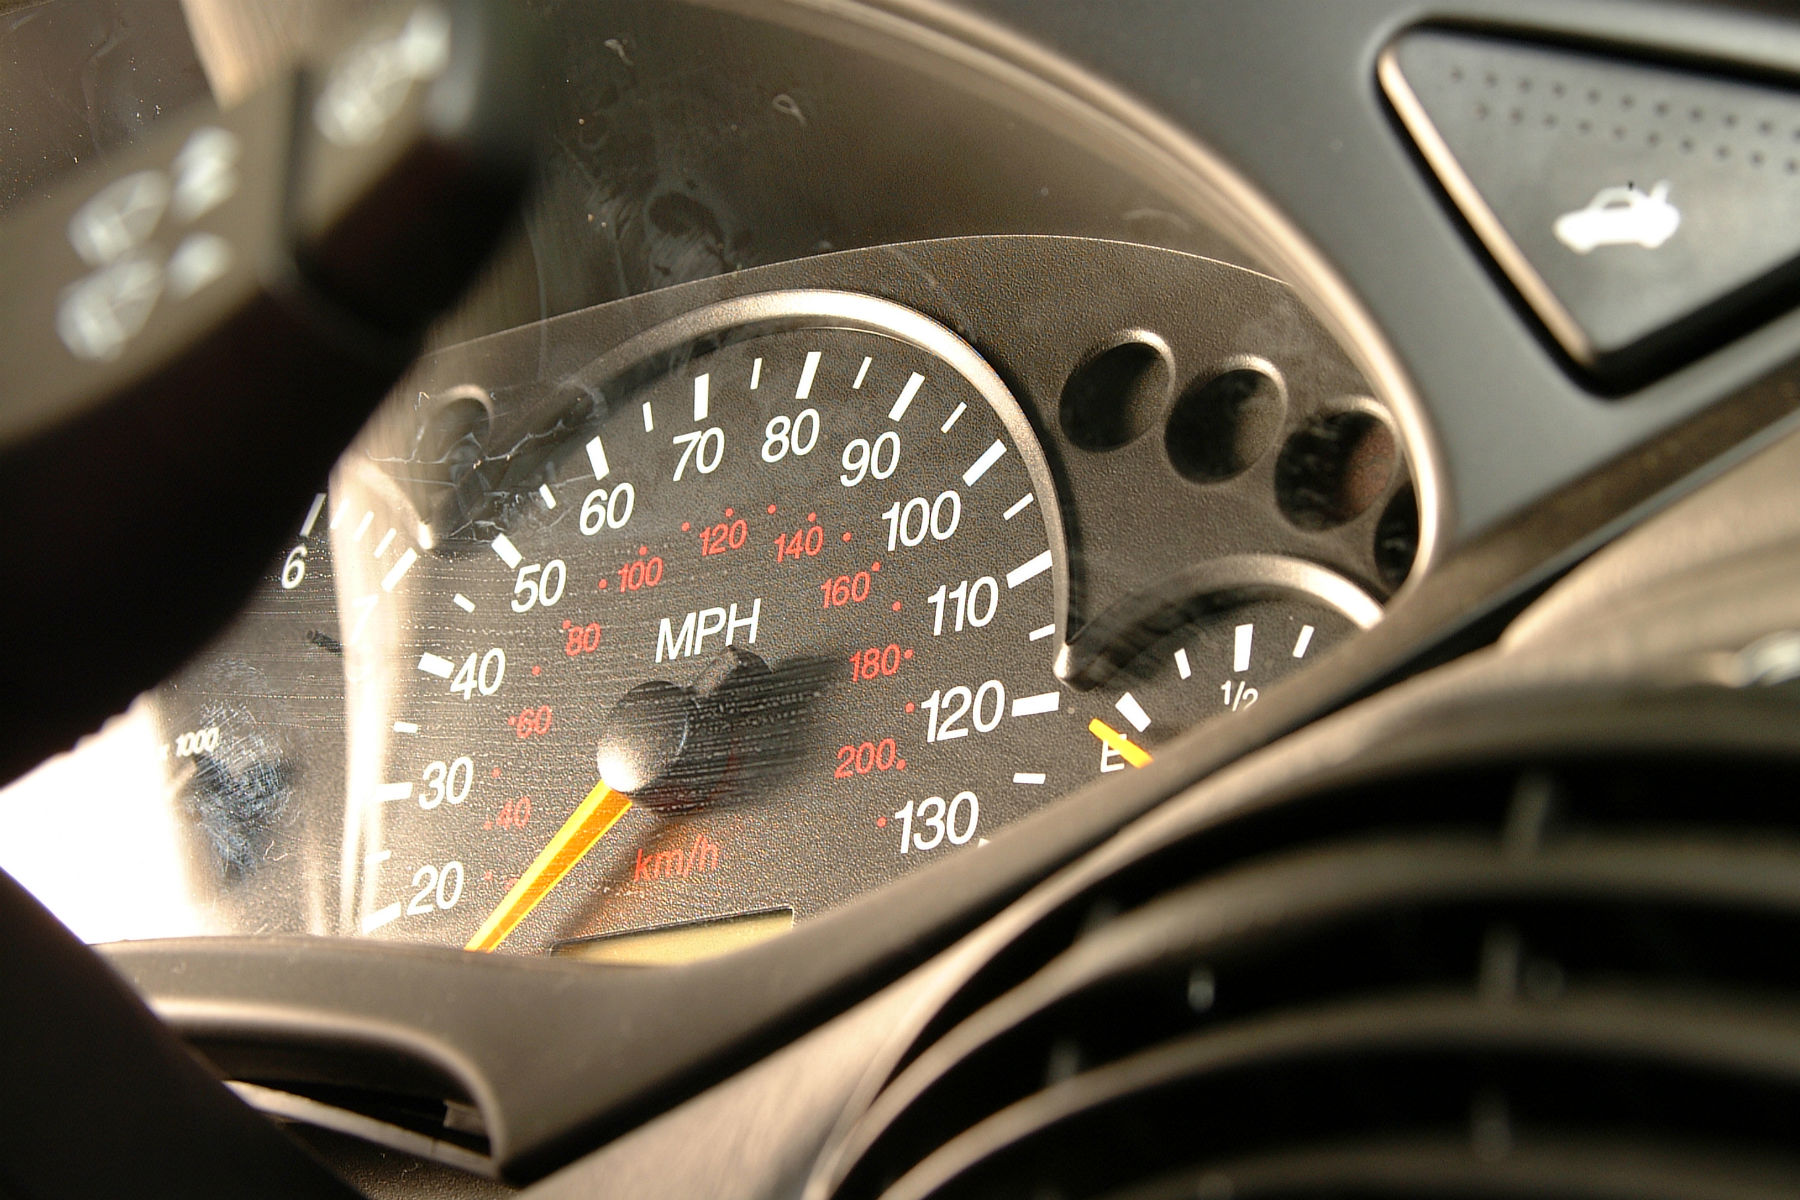 Car clocking is on the rise – and PCP deals could be to blame